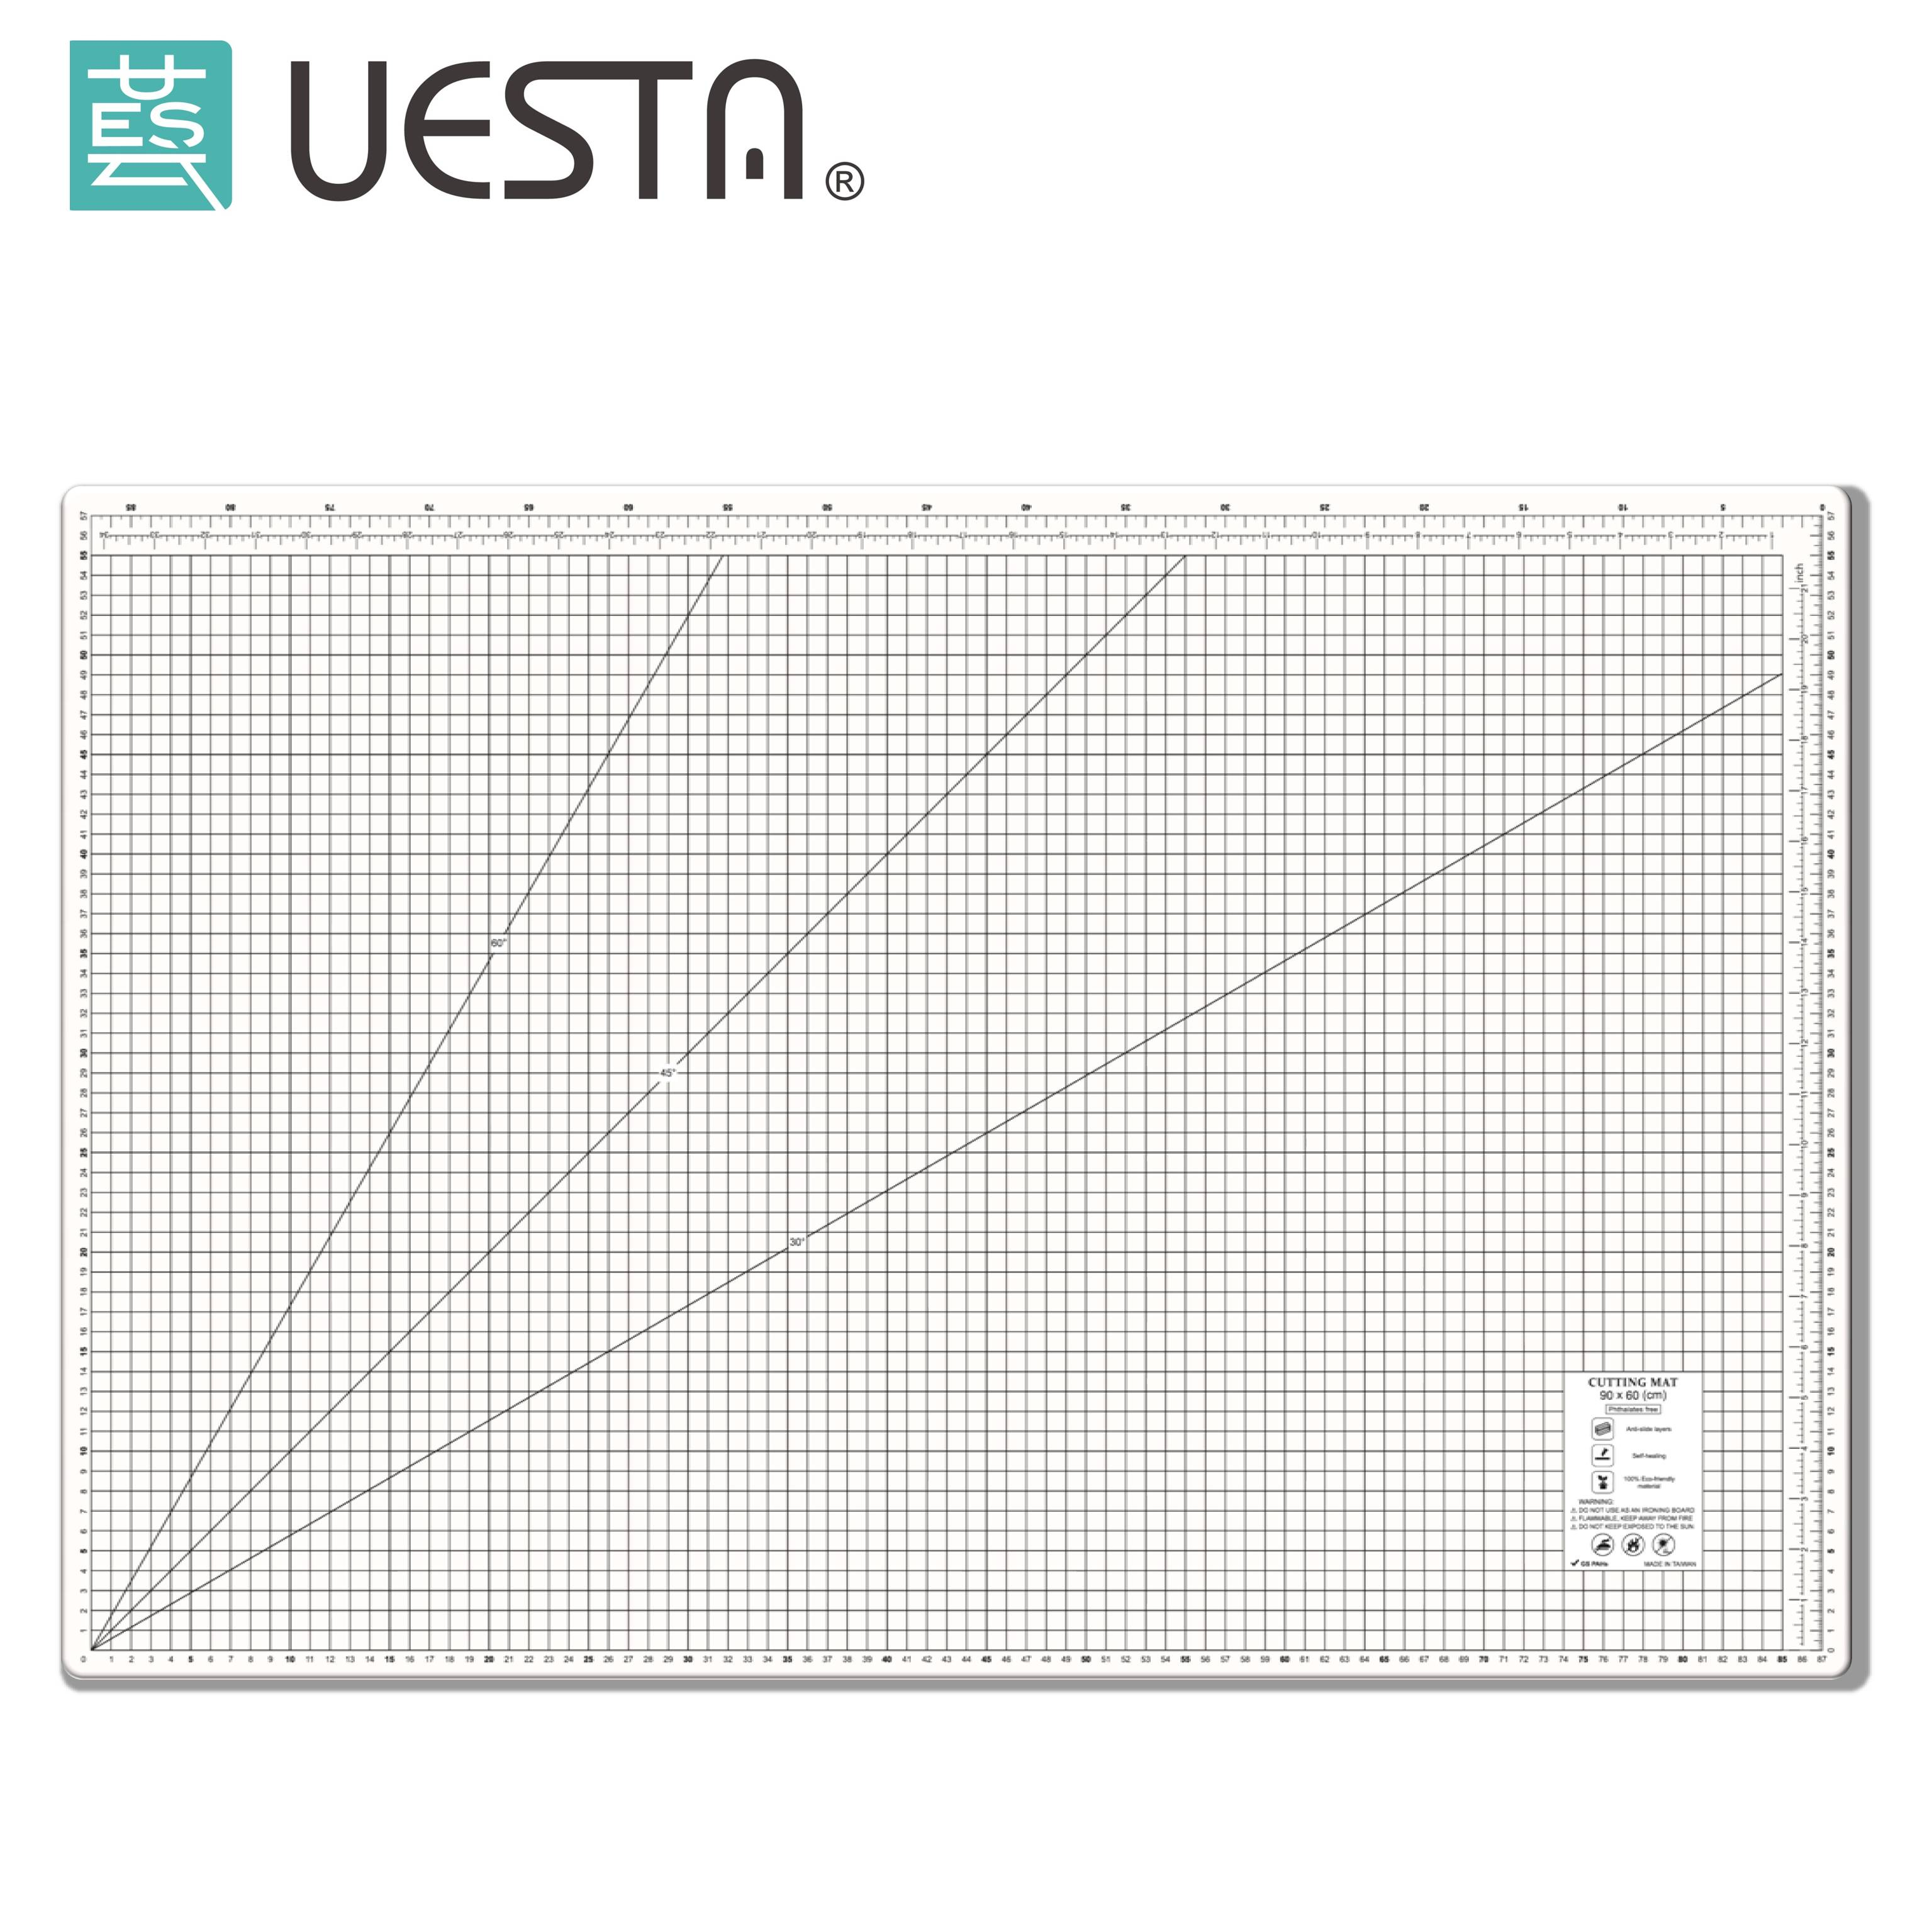 PP A1 White Cutting Mat 36 x24 Multipurpose Self Healing Cutting Mats for Quilting 3 Ply